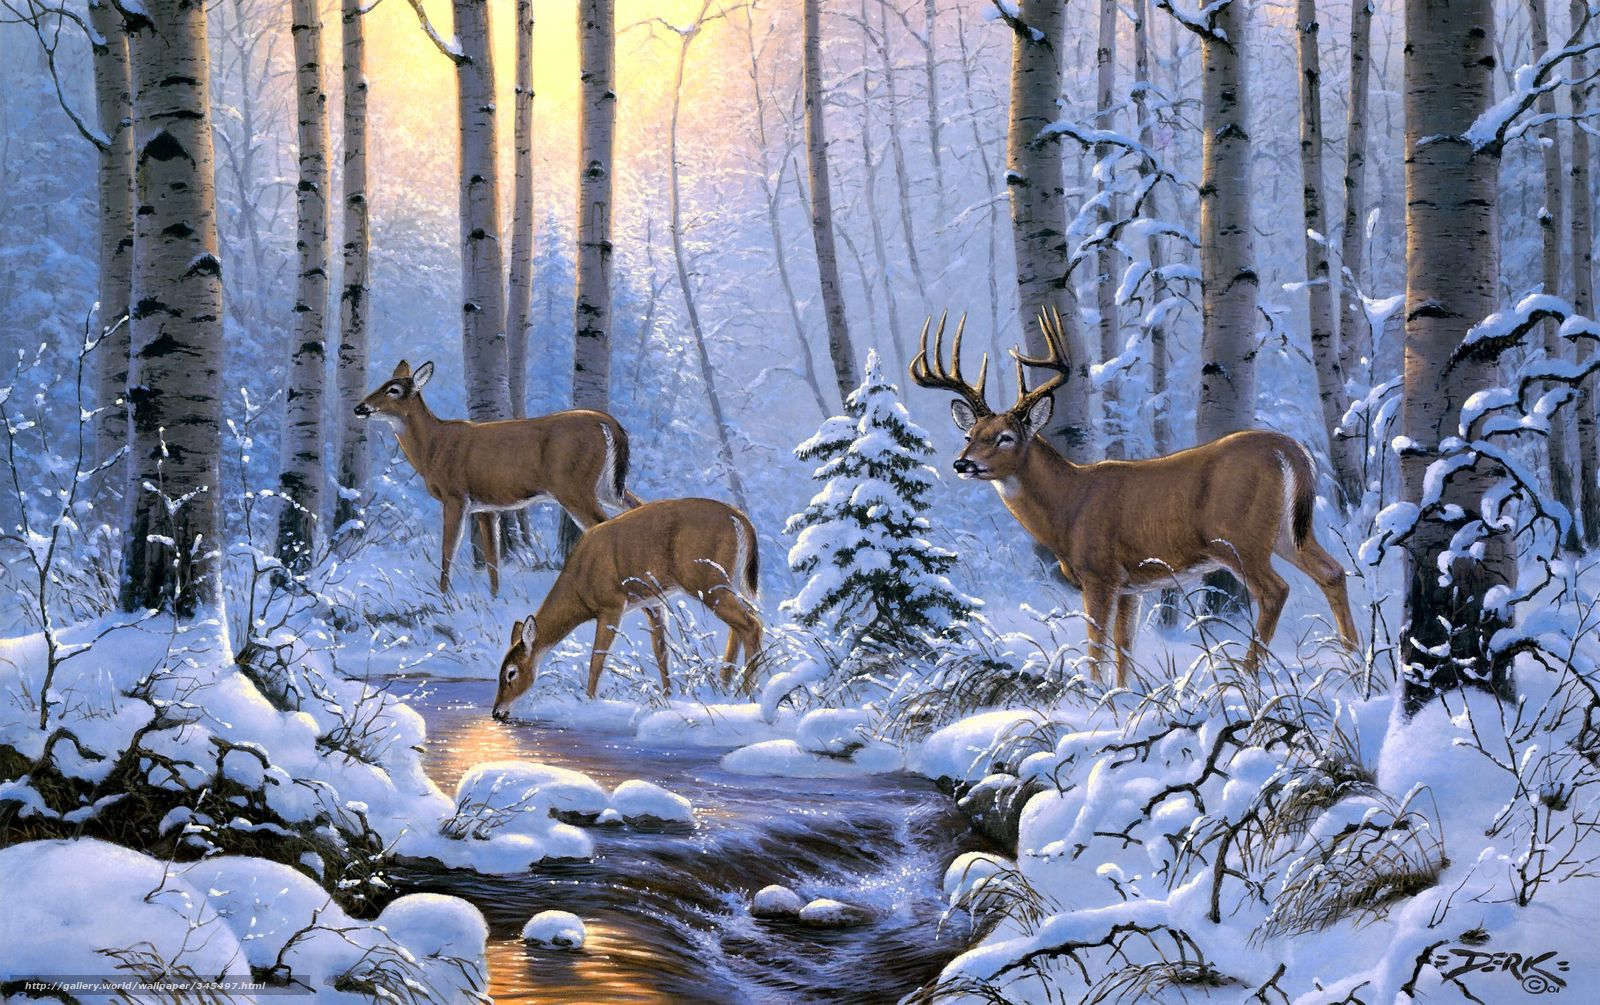 Winter Wallpaper With Deer File Name derk hansen oleni zima les sneg ruchej derevya art